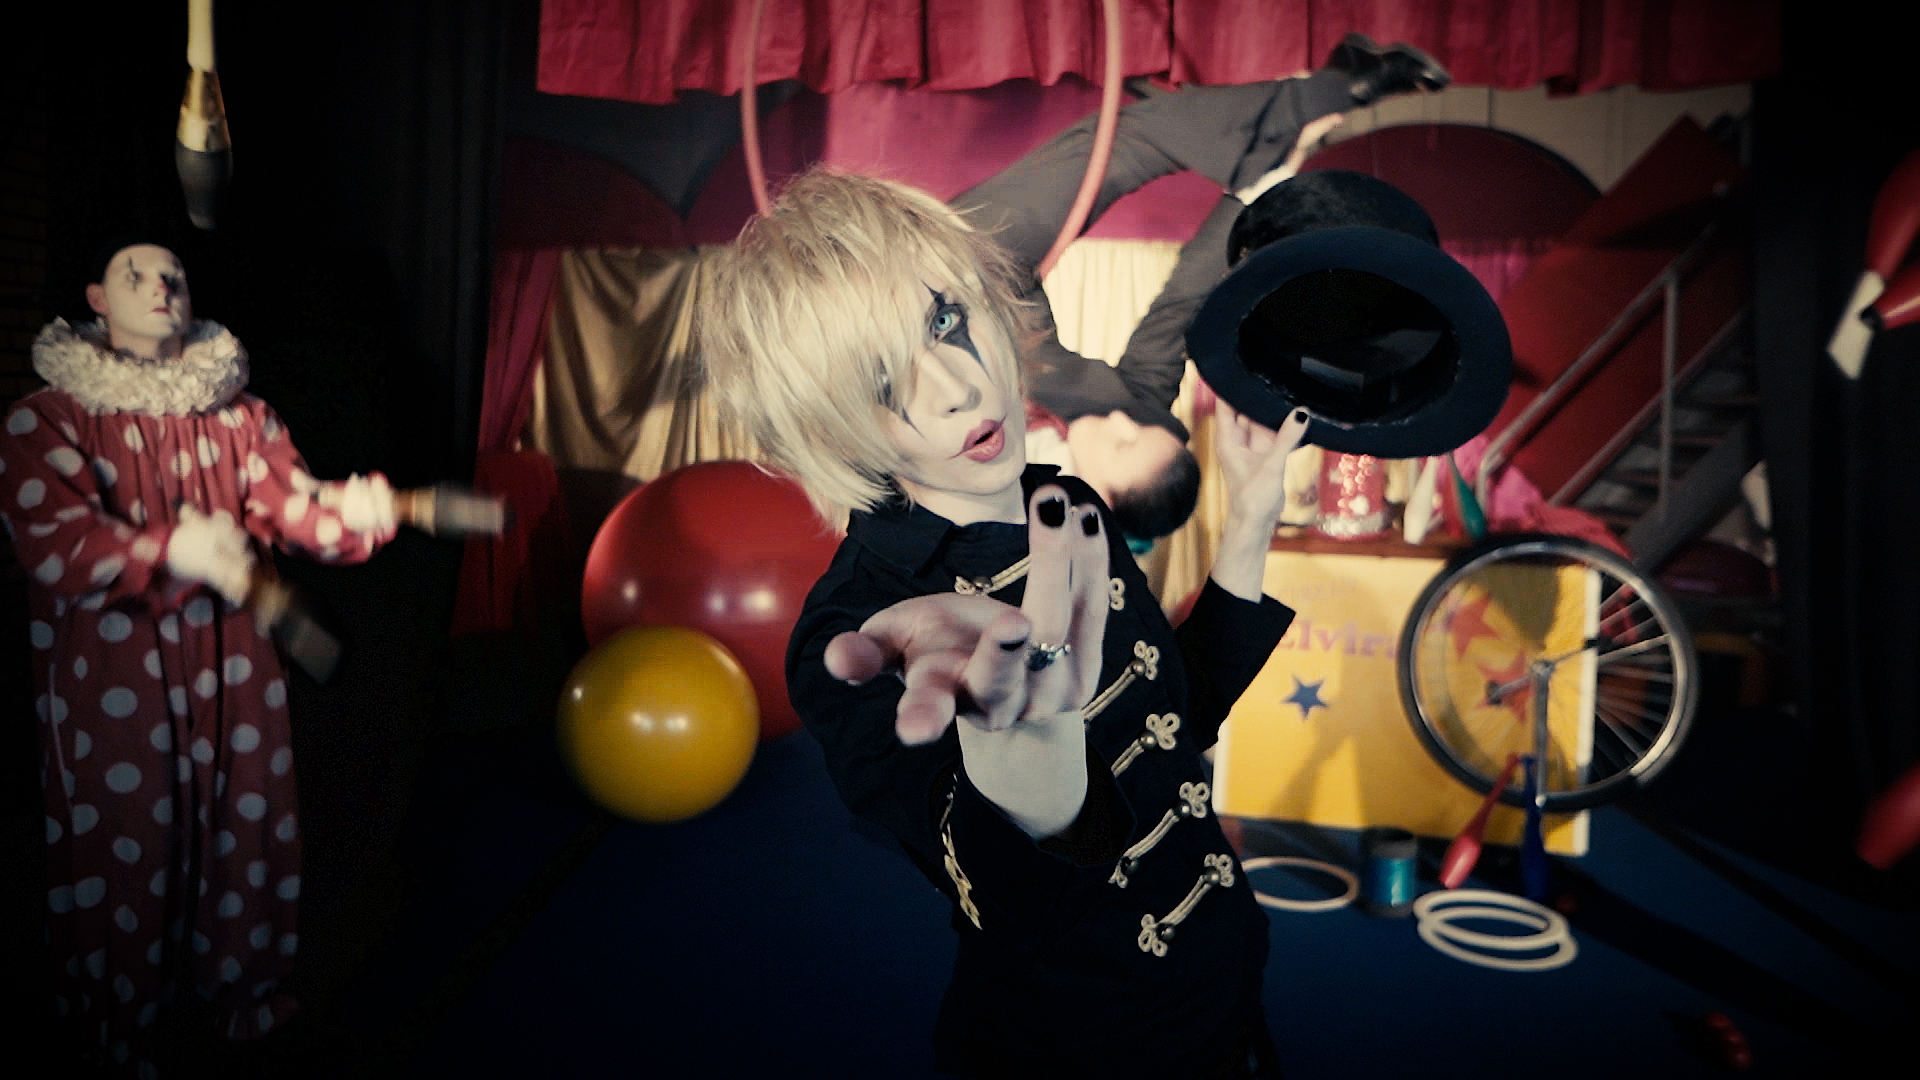 YOHIO – Merry Go Round (OFFICIAL MUSIC VIDEO)